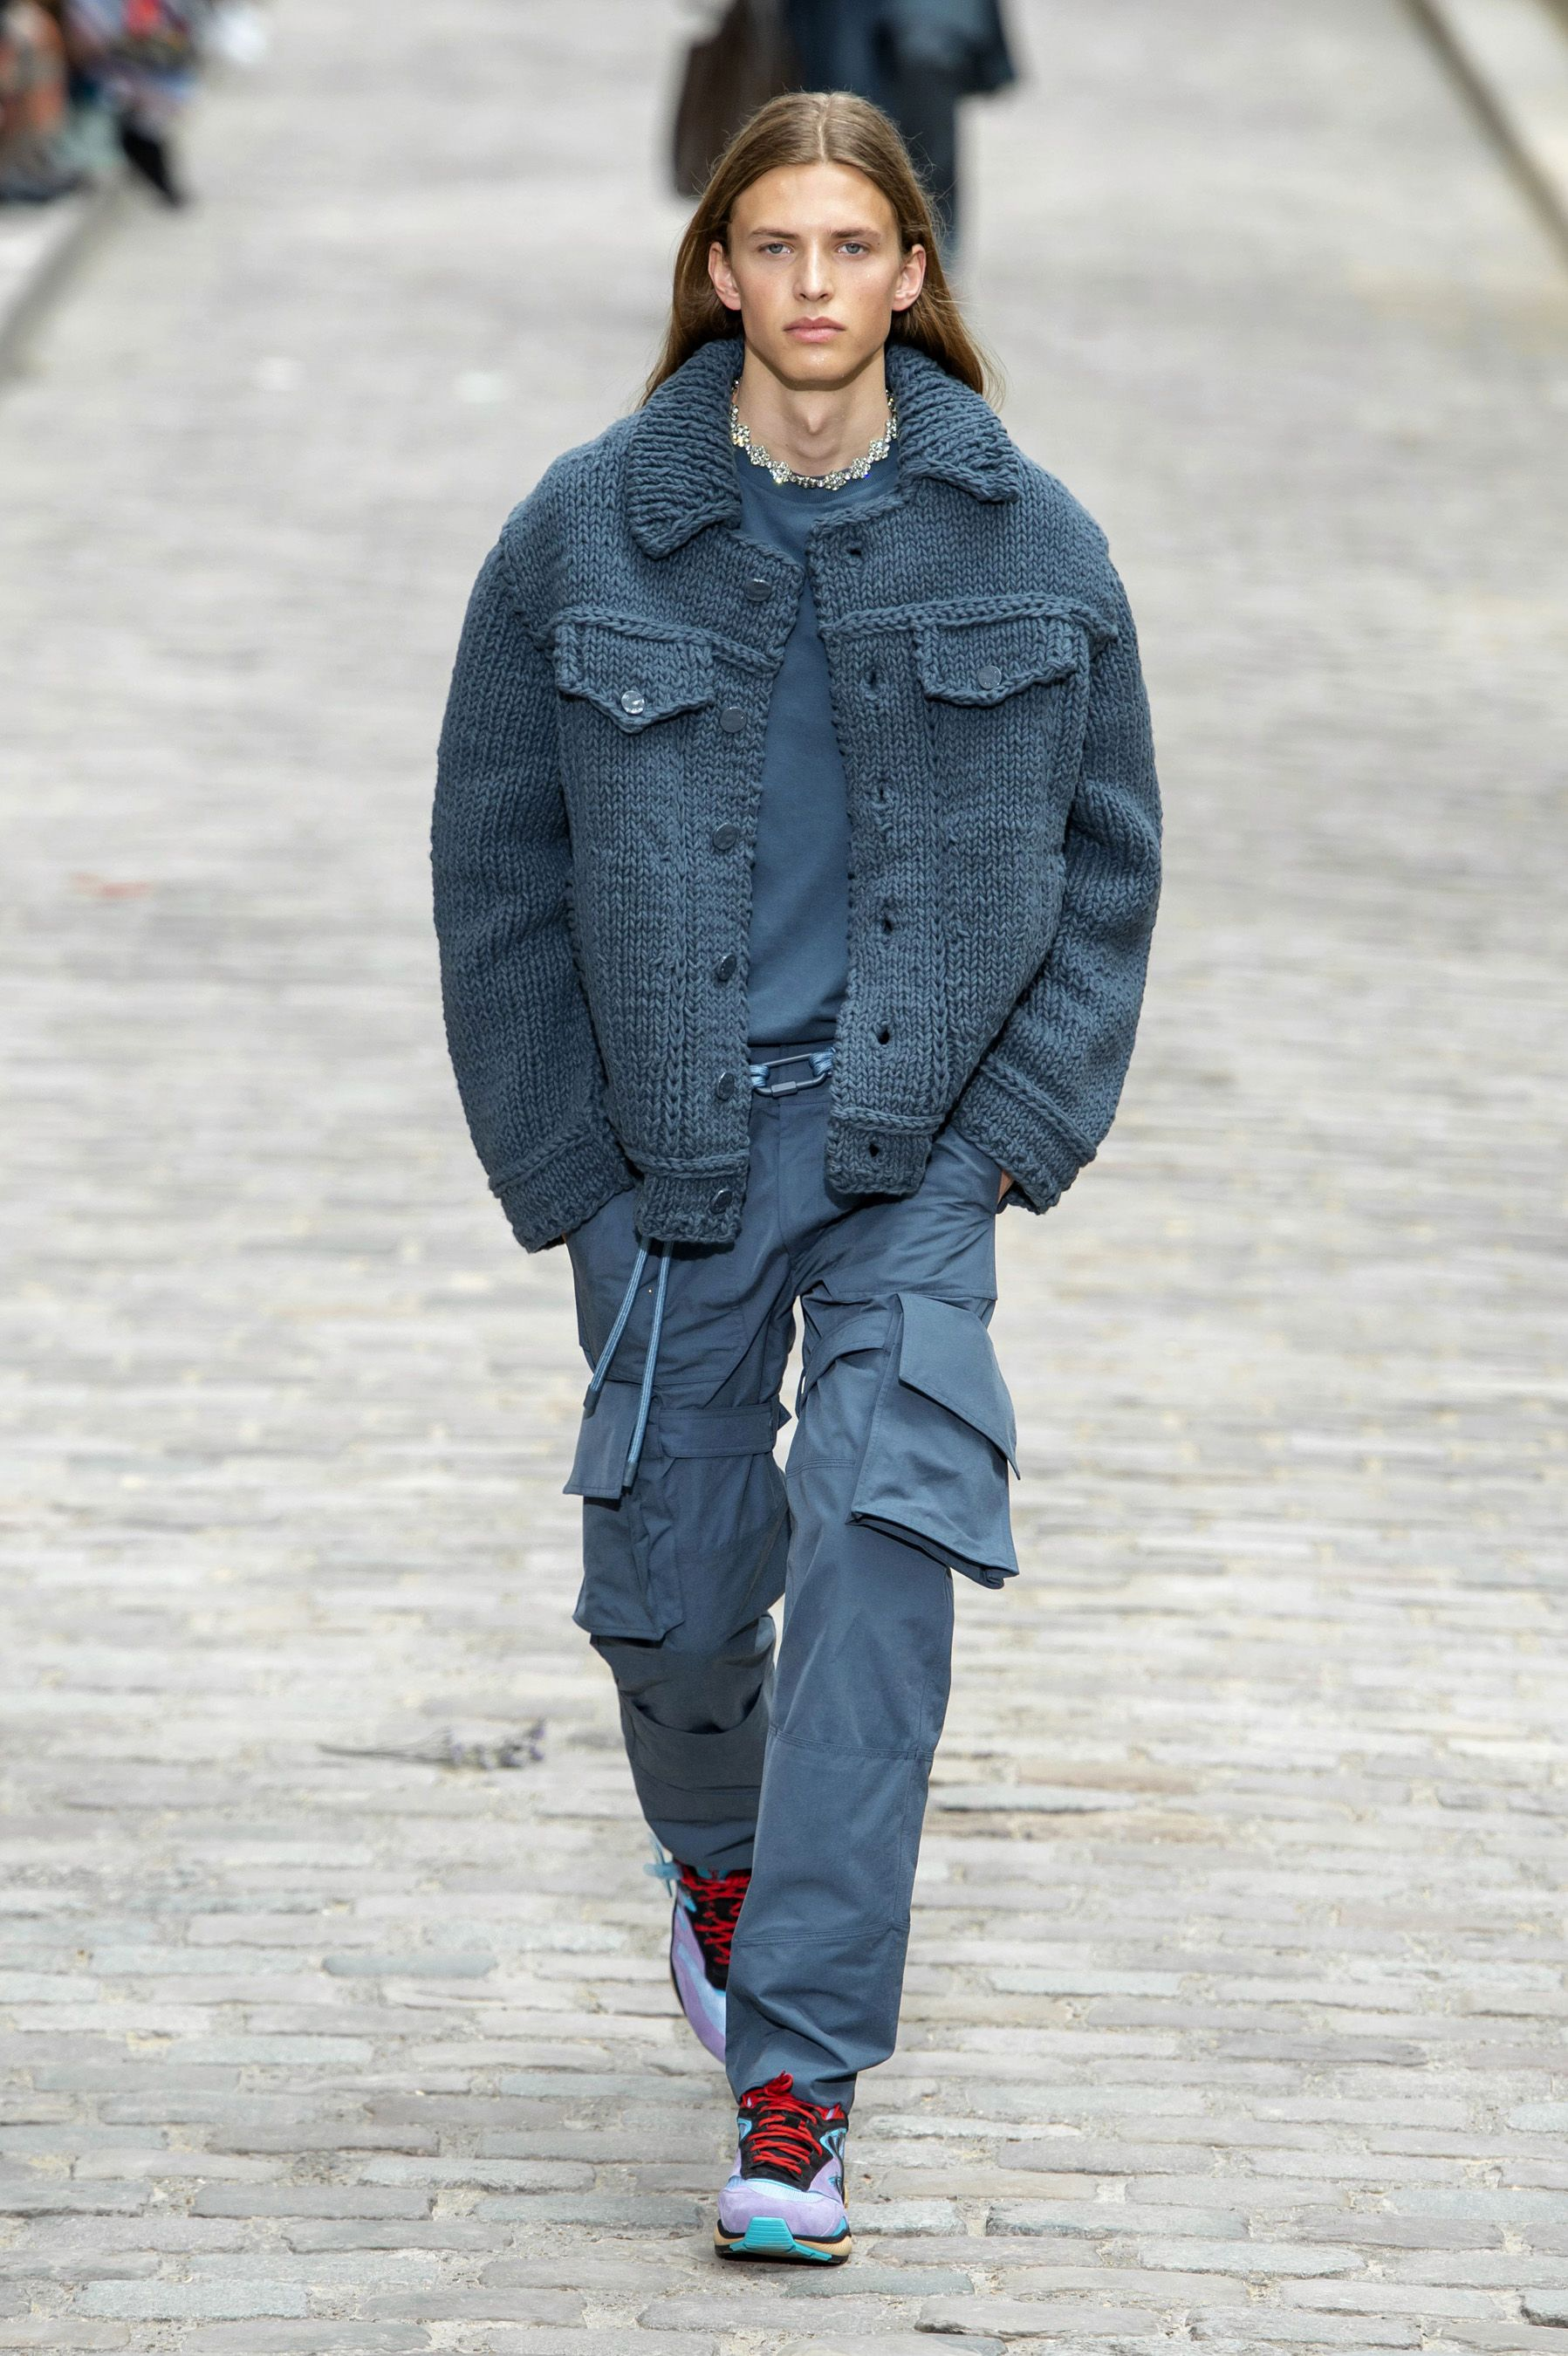 500+ Style. ideas in 2020 | style, mens outfits, mens fashion